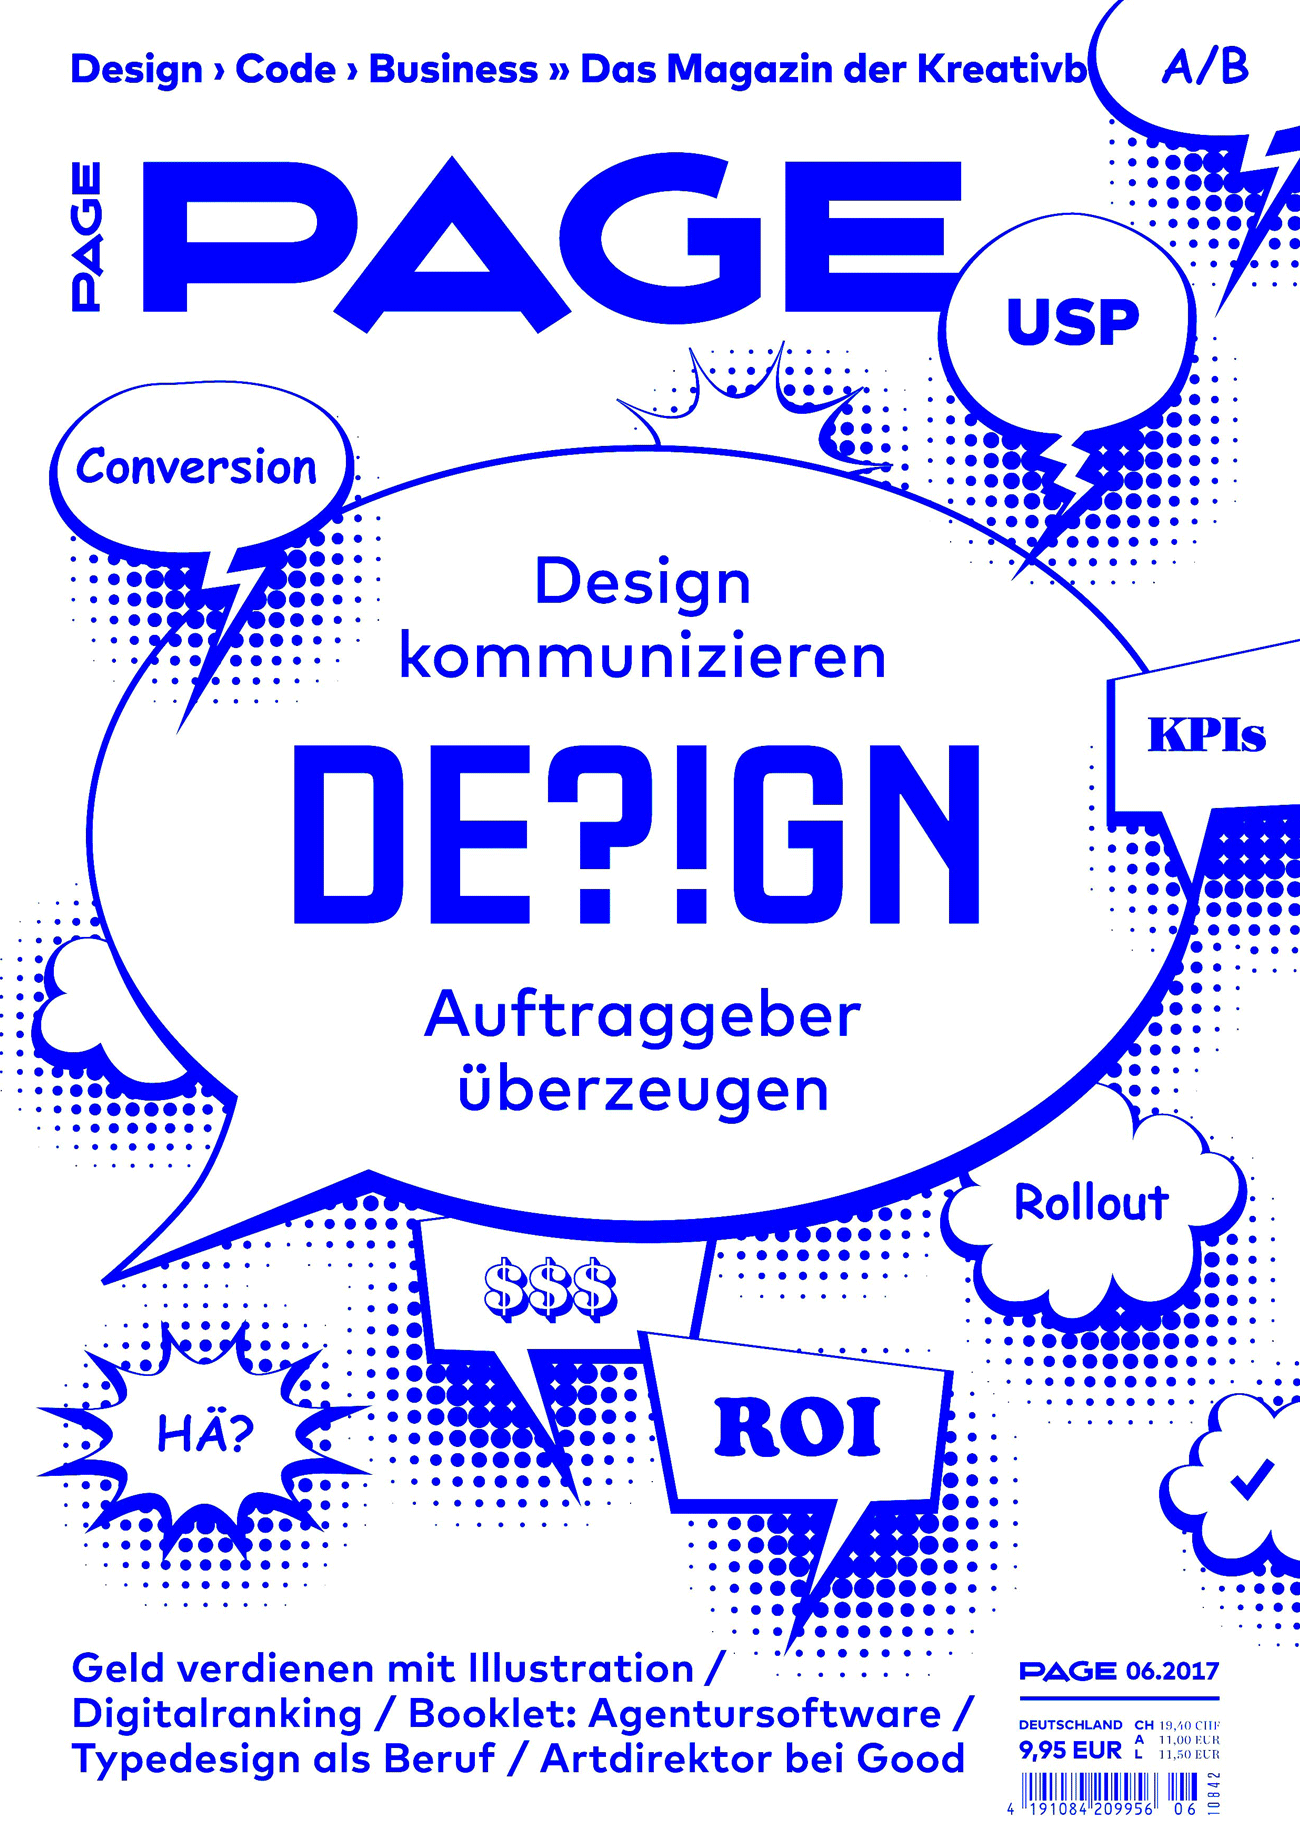 Branding, Corporate Design, Design, Strategie